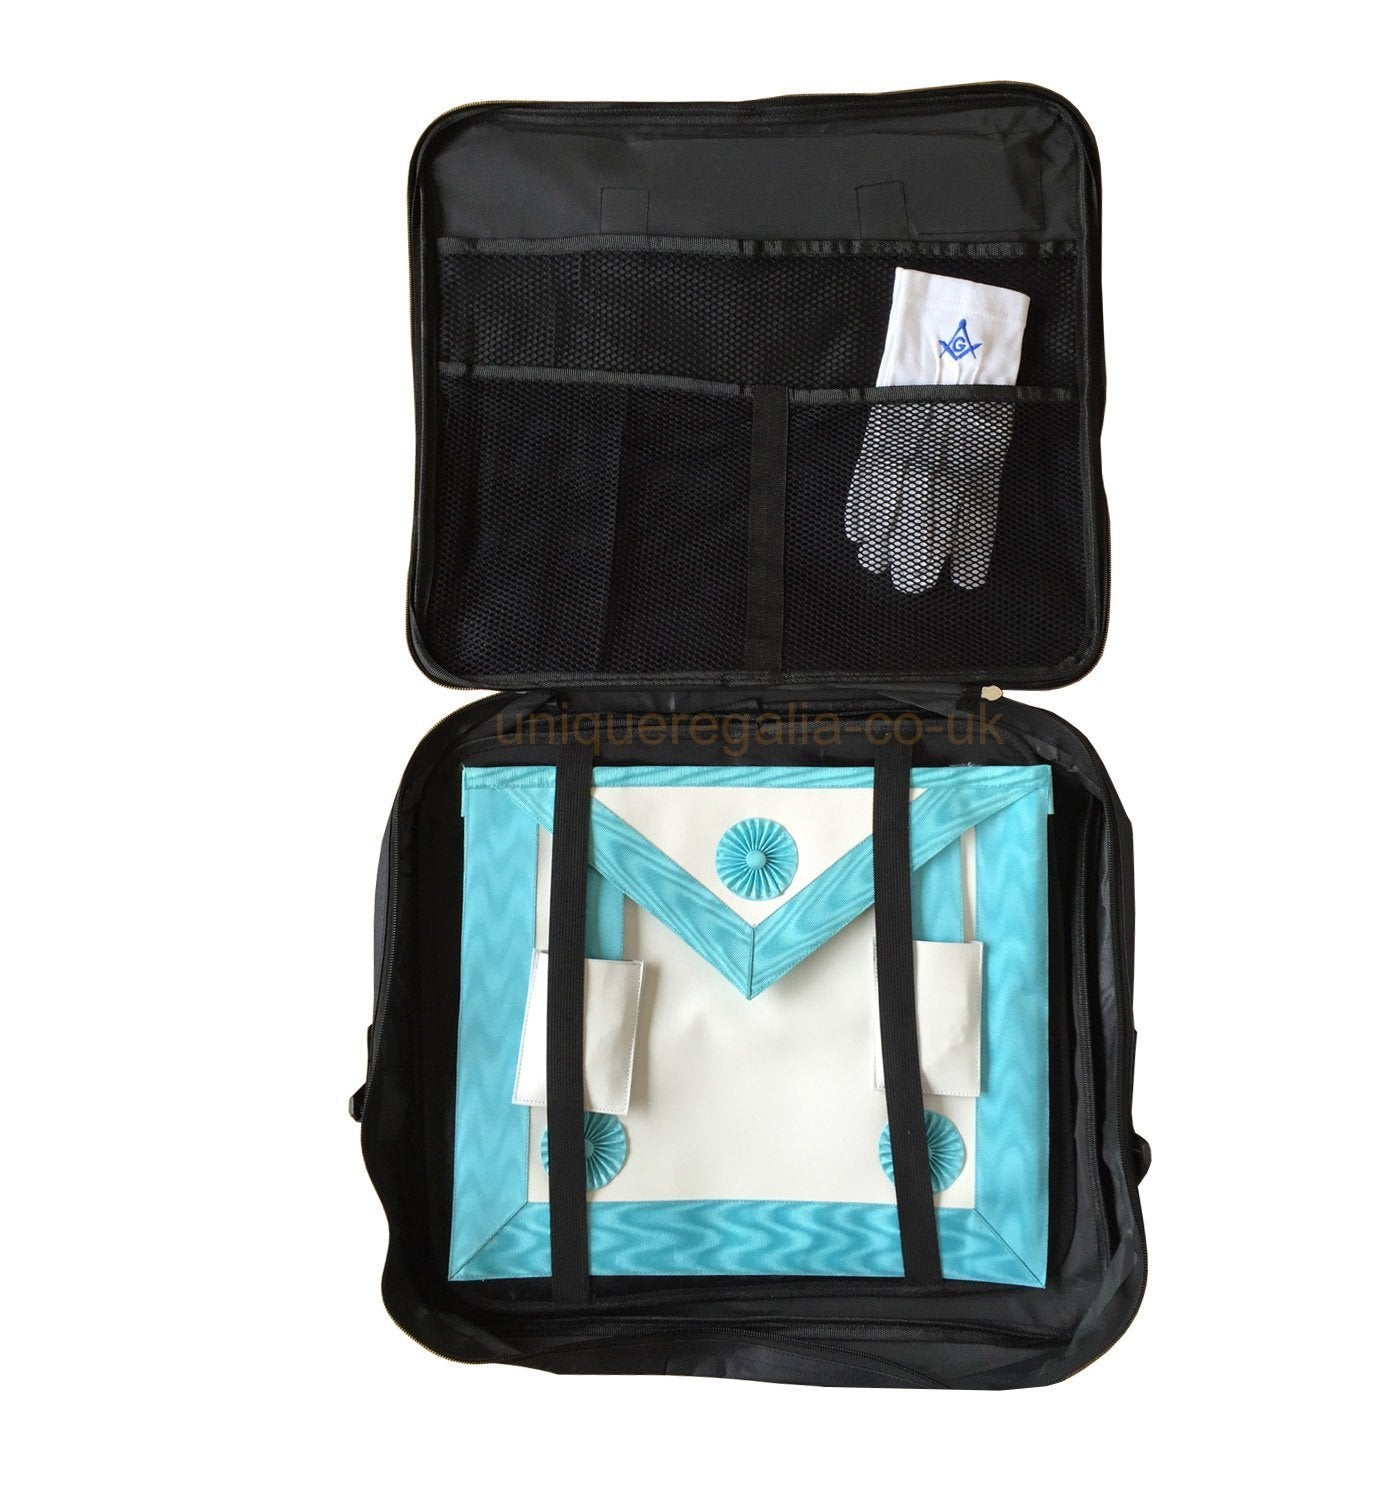 Masonic Apron Soft Case - Bricks Masons